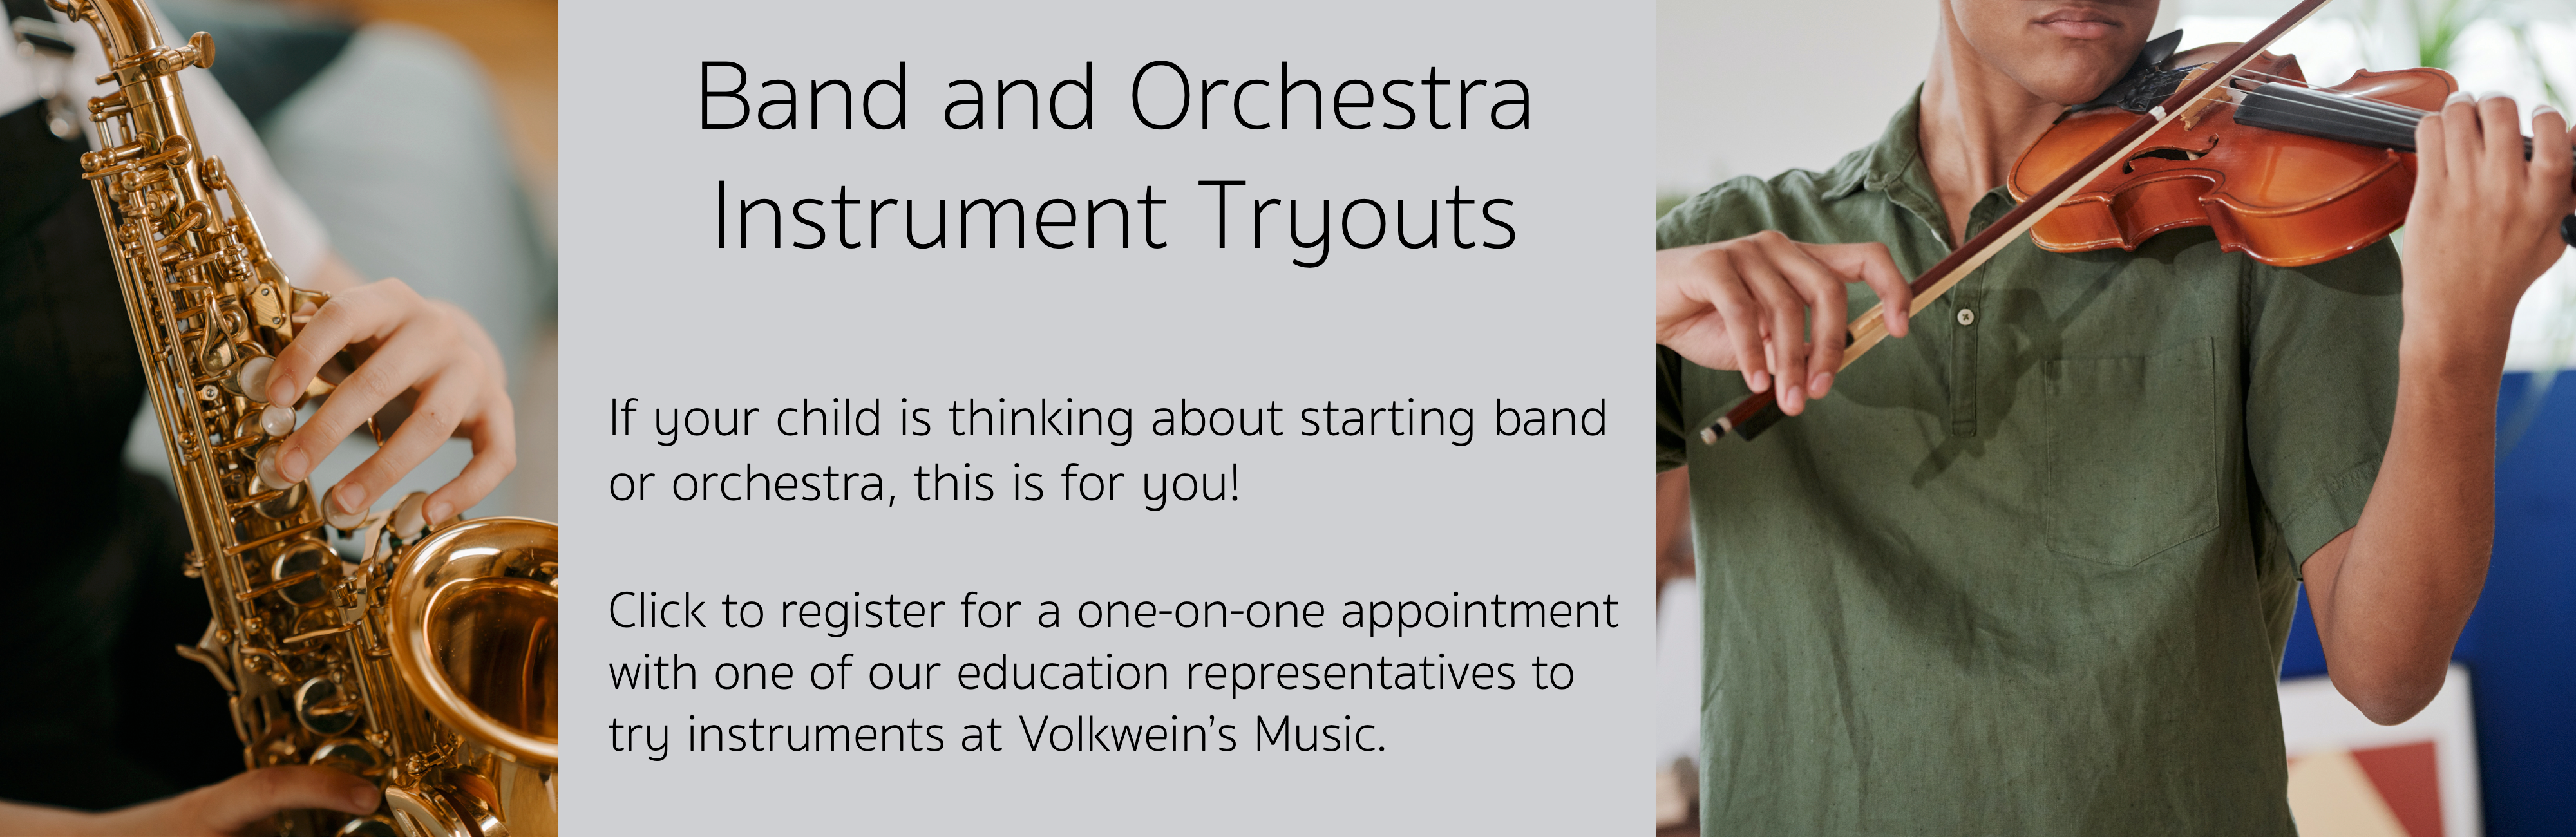 Instrument Tryouts